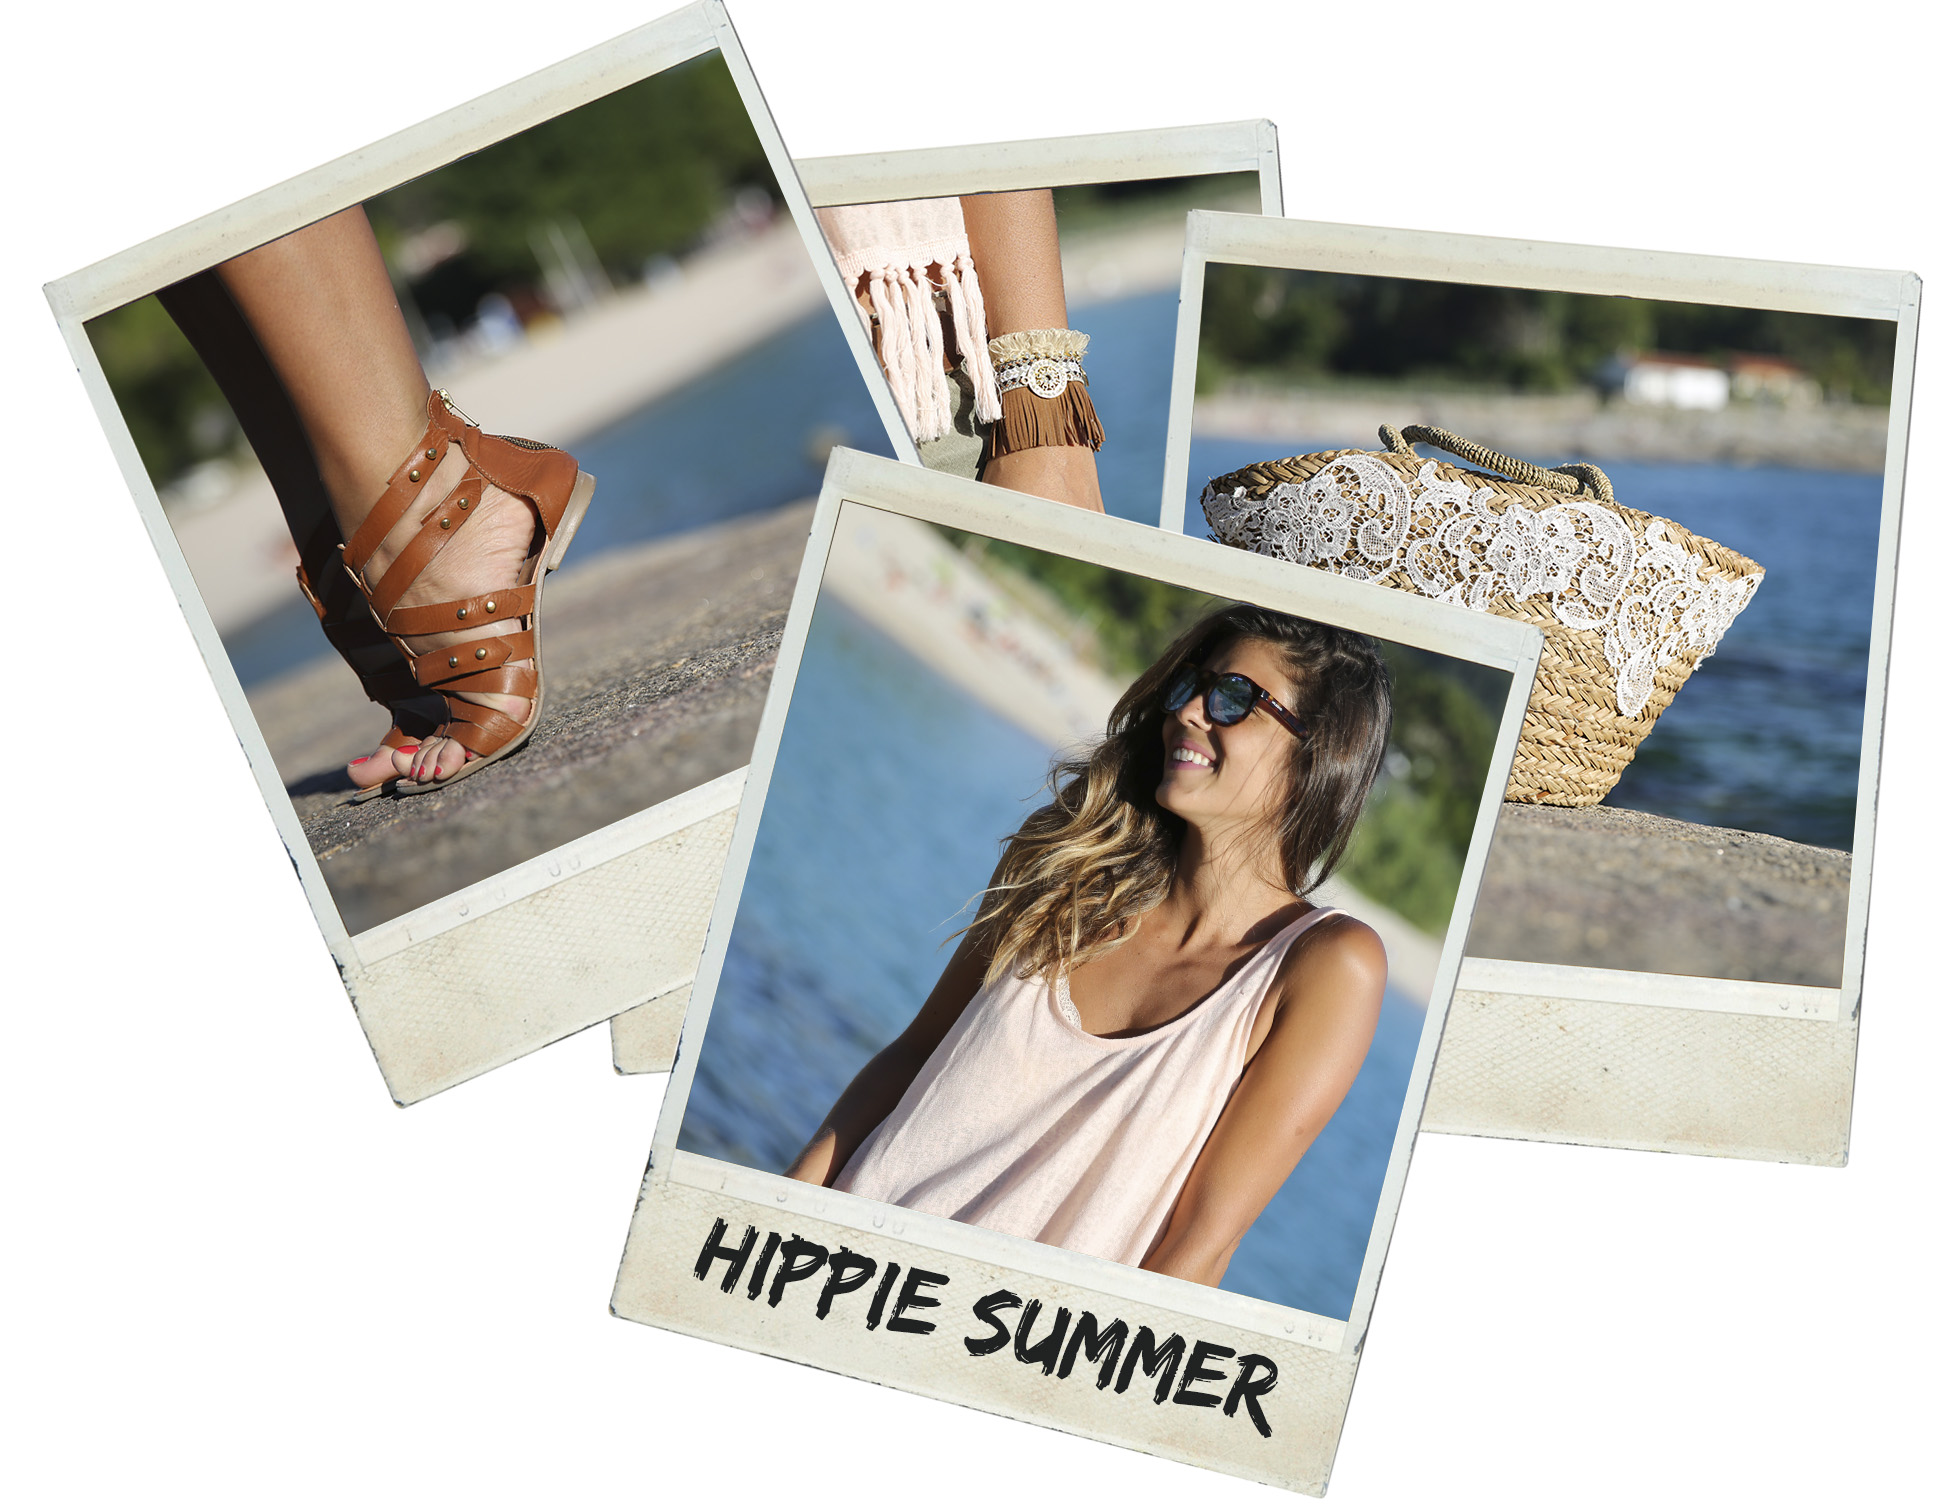 trendy_taste-look-outfit-street_style-ootd-blog-blogger-fashion_spain-moda_españa-boho-hippie-beach-playa-sandalias_romanas-denim_shorts-shorts_vaqueros_rotos-galicia-menduiña-mr._boho-gafas_espejo-polaroid